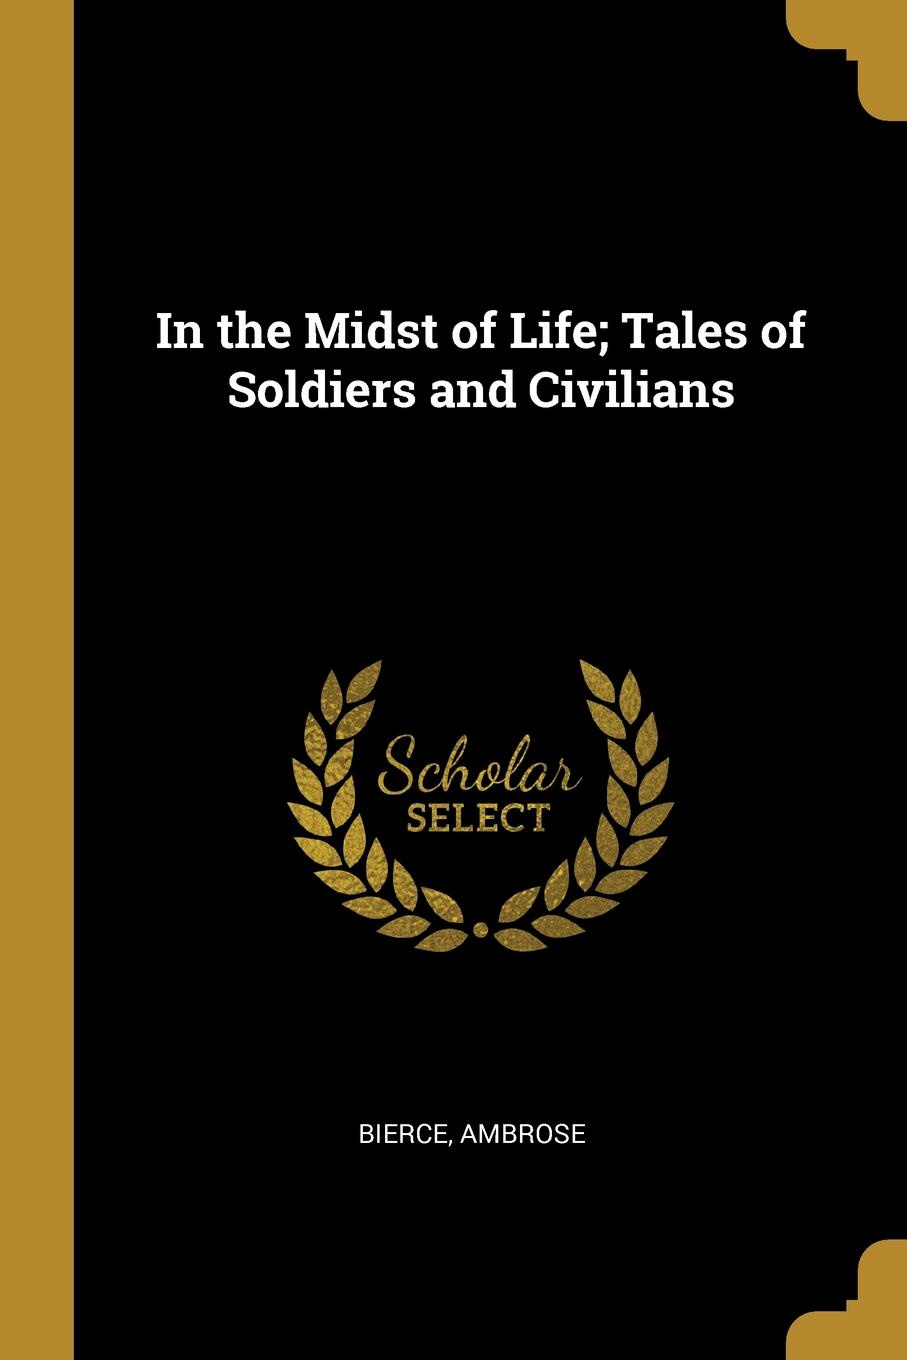 Bierce Ambrose. In the Midst of Life; Tales of Soldiers and Civilians